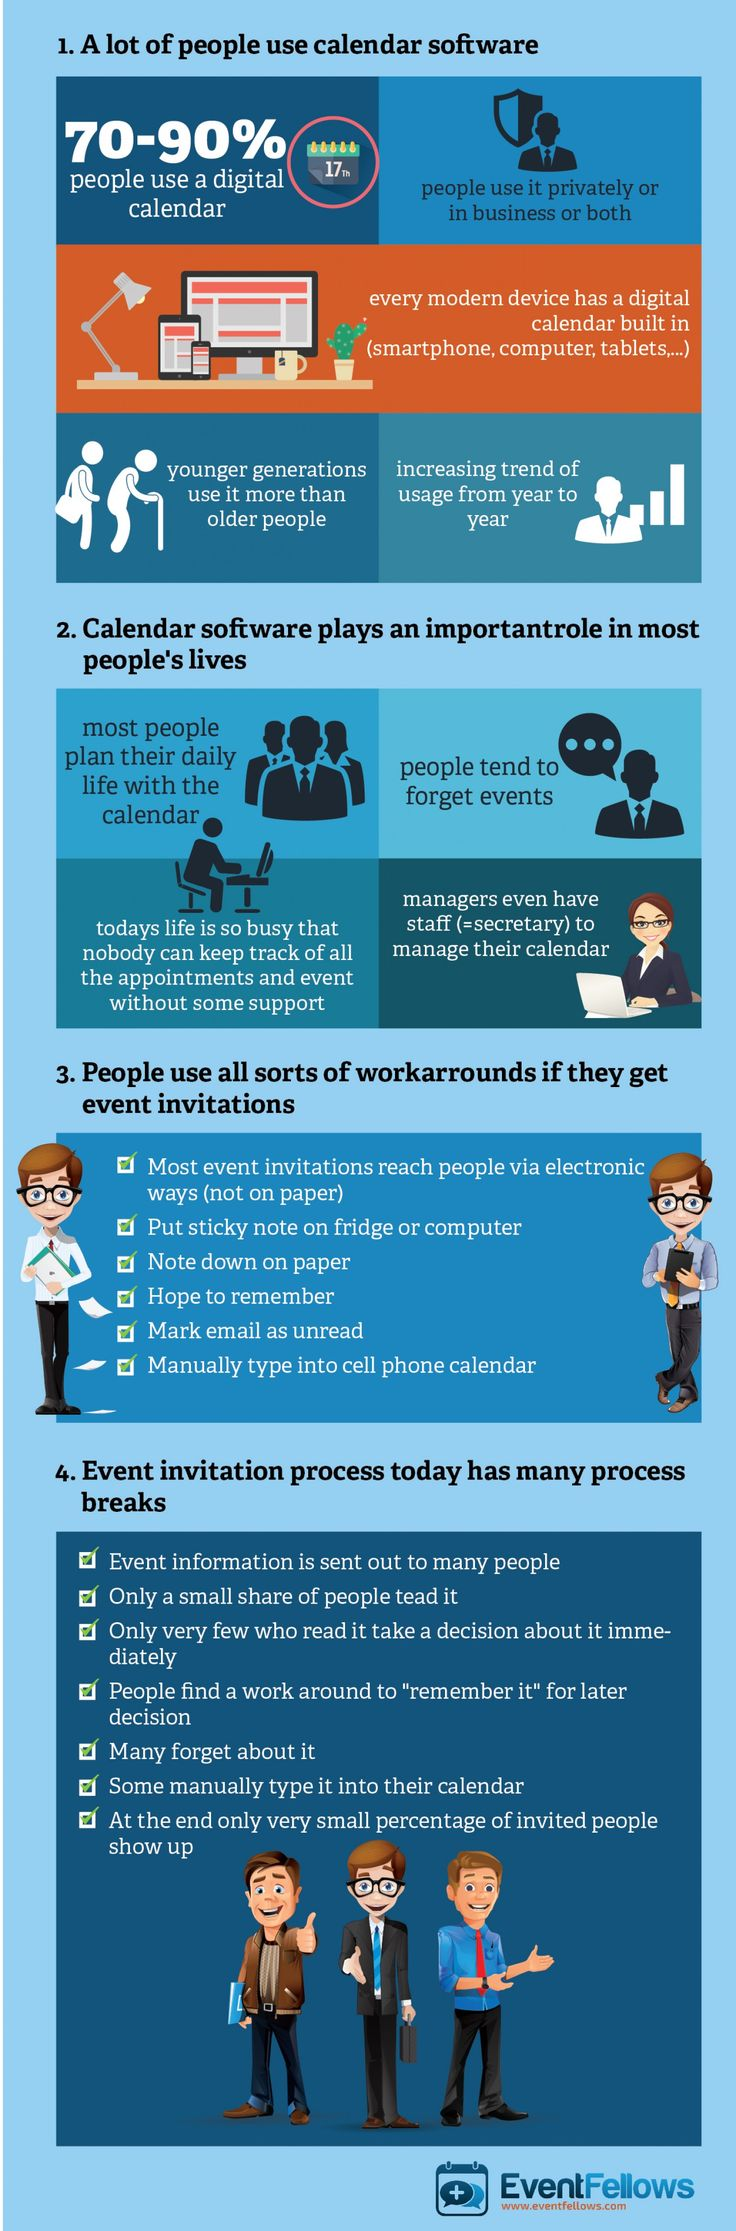 This one rings true for me. INFOGRAPHIC: A lot of People Use Calendar Software